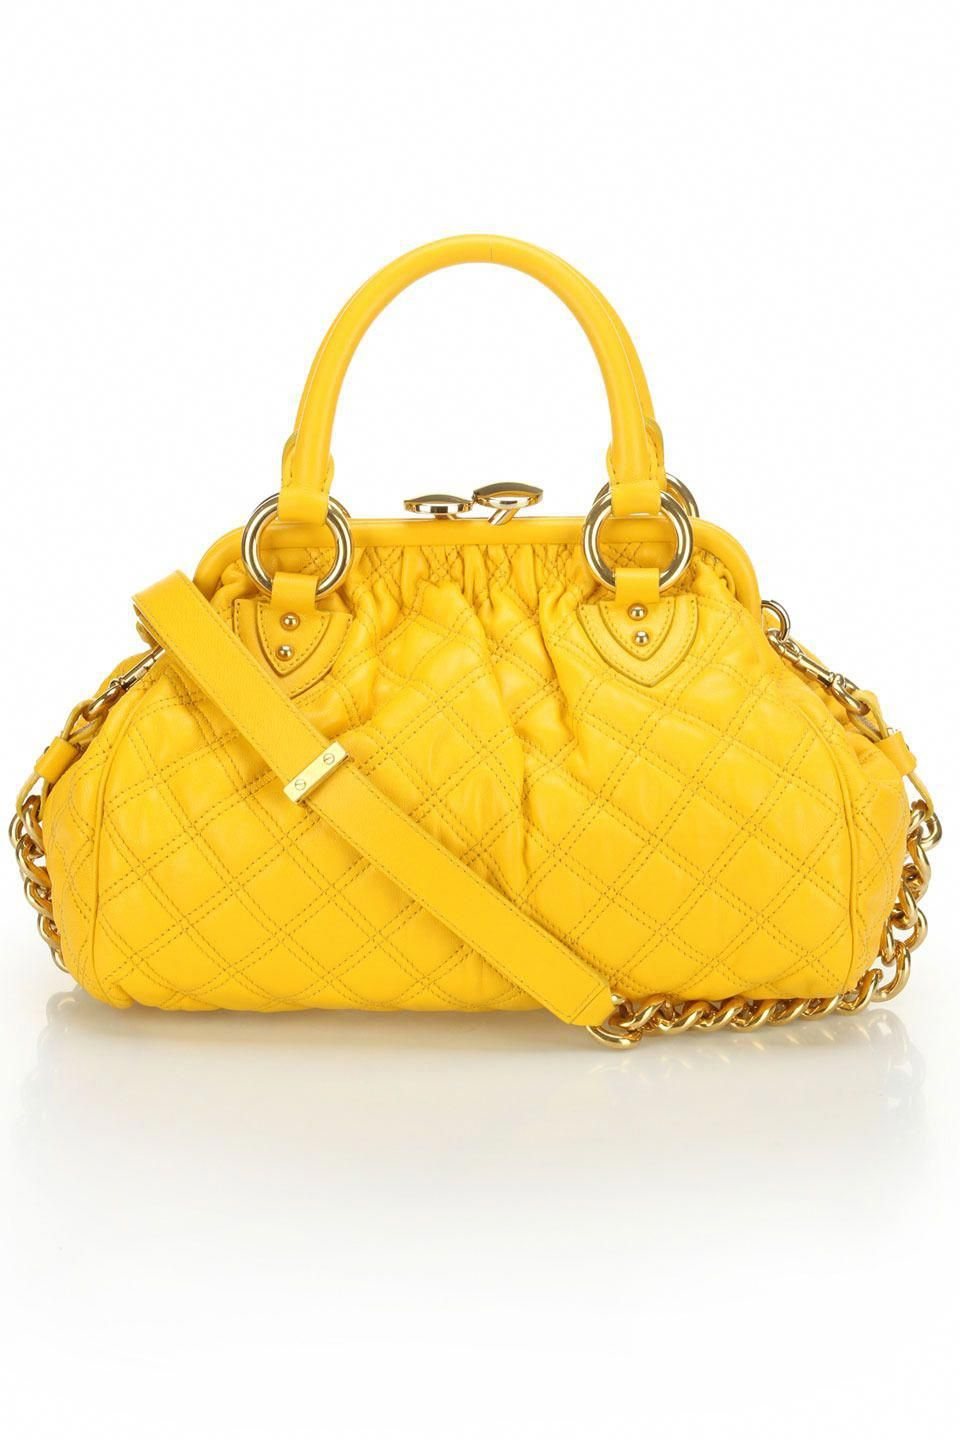 531990edcd1 Vintage-Inspired Handbag In Yellow. | Best Leather Handbags | Bags ...